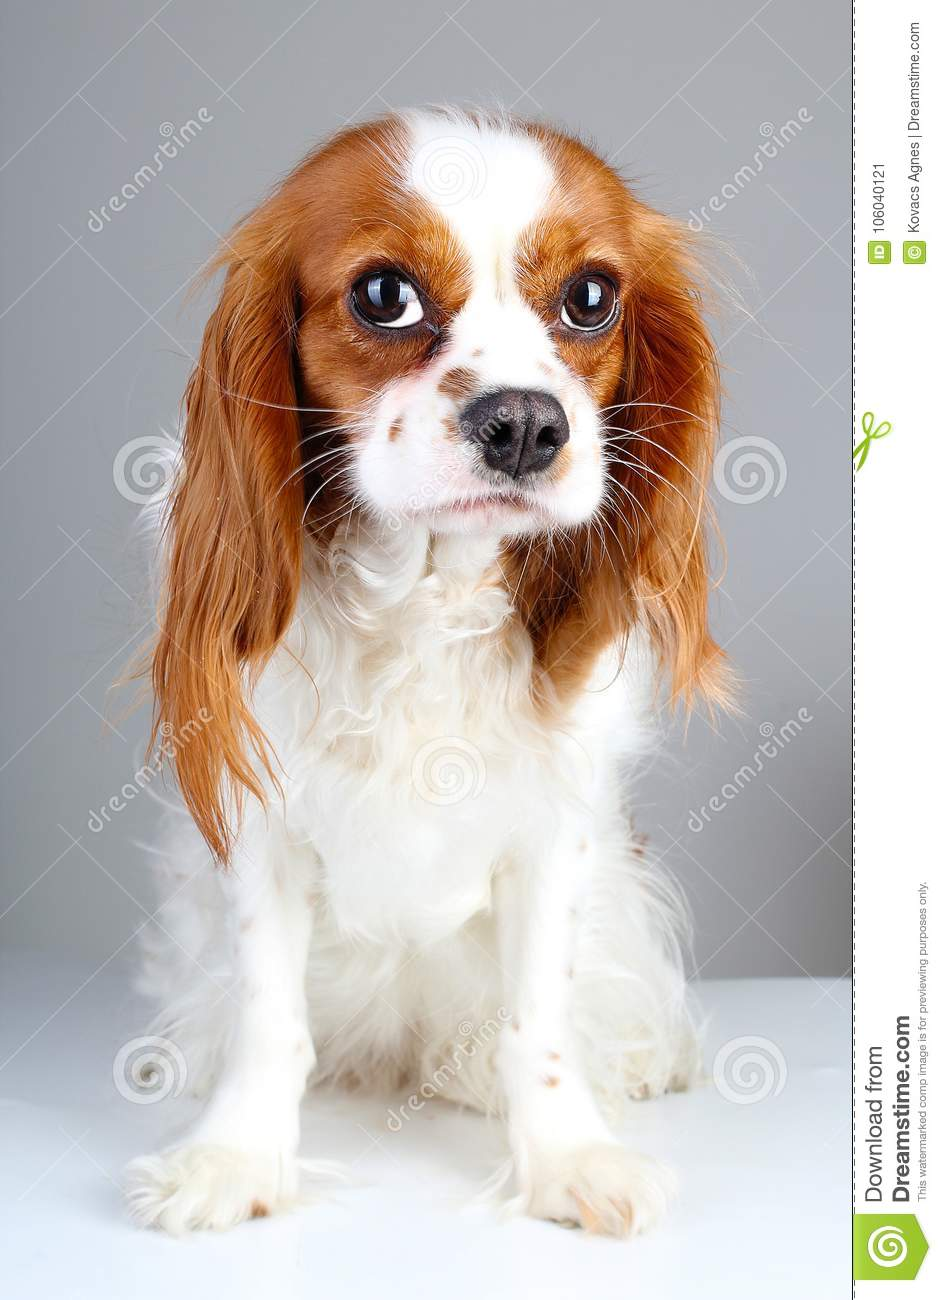 Scared dog. Cute abandoned scared guity face cavalier king charles spaniel dog pet animal photo. Scared dog puppy on